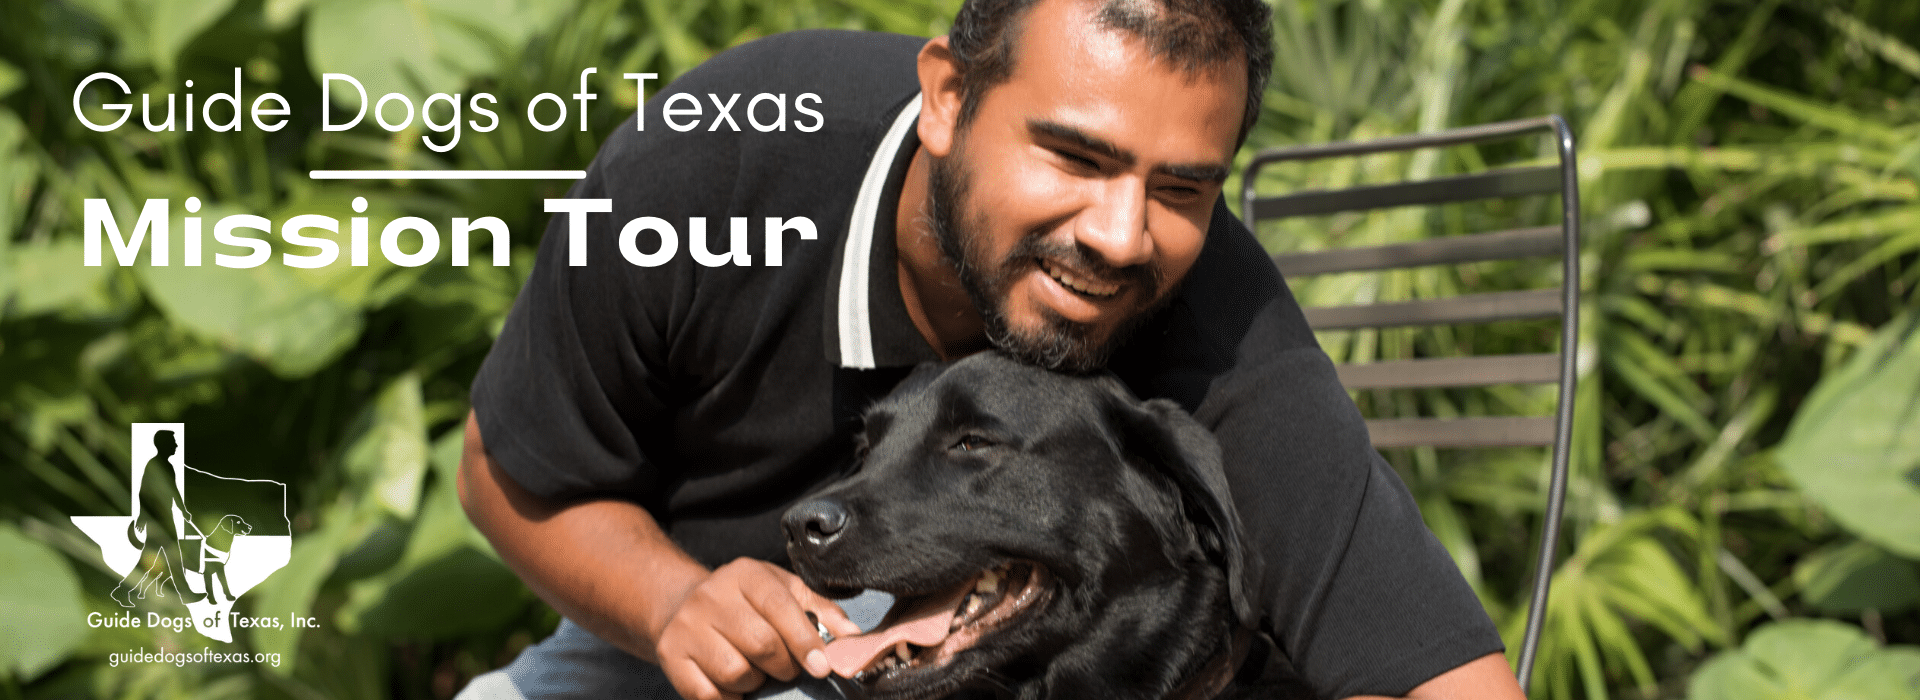 Guide Dogs of Texas -- Mission Tour, GDTX Logo, Image is of GDTX Client smiling with his guide dog